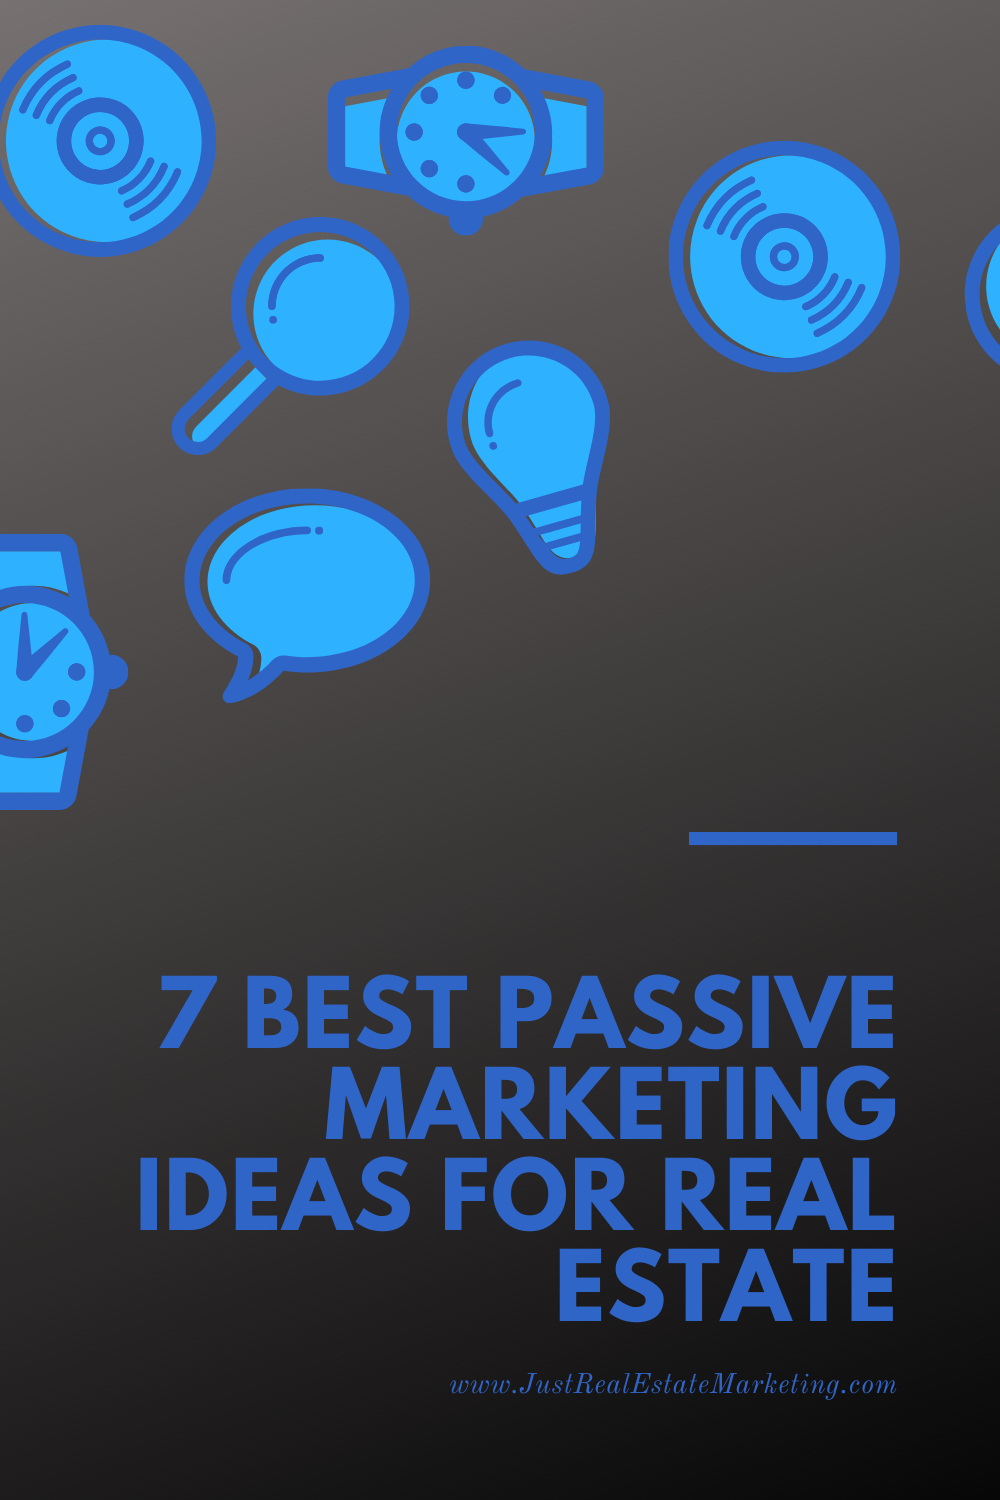 Passive No Fuss Ways To Market Yourself As A Real Estate Agent In 2020 Real Estate Client Luxury Real Estate Marketing Real Estate Marketing Tools